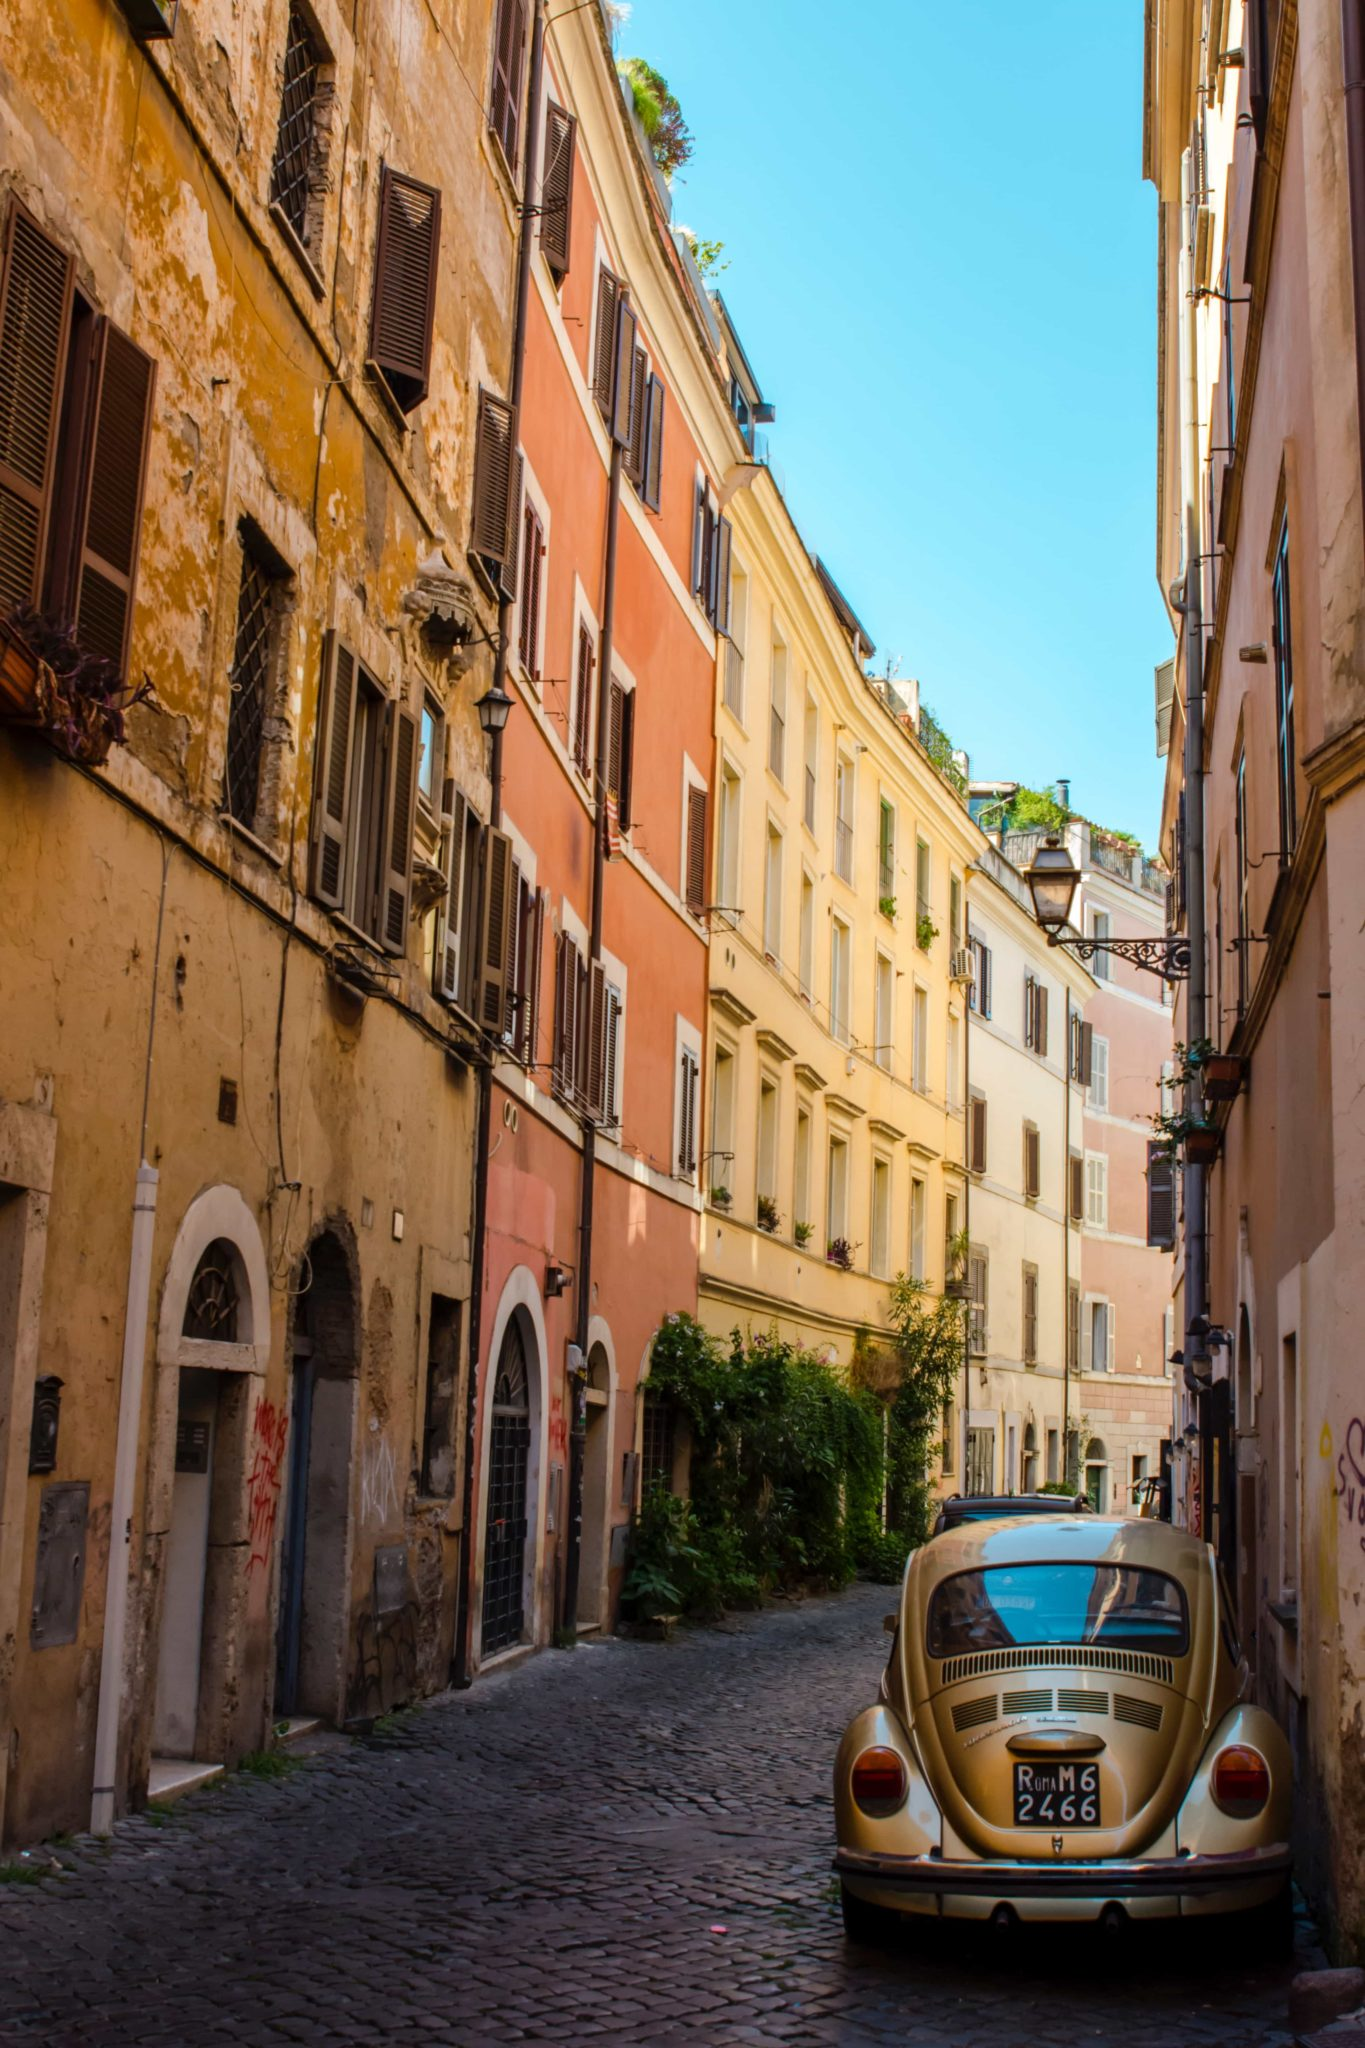 3 Days in Rome - how to spend three days in enthralling Rome